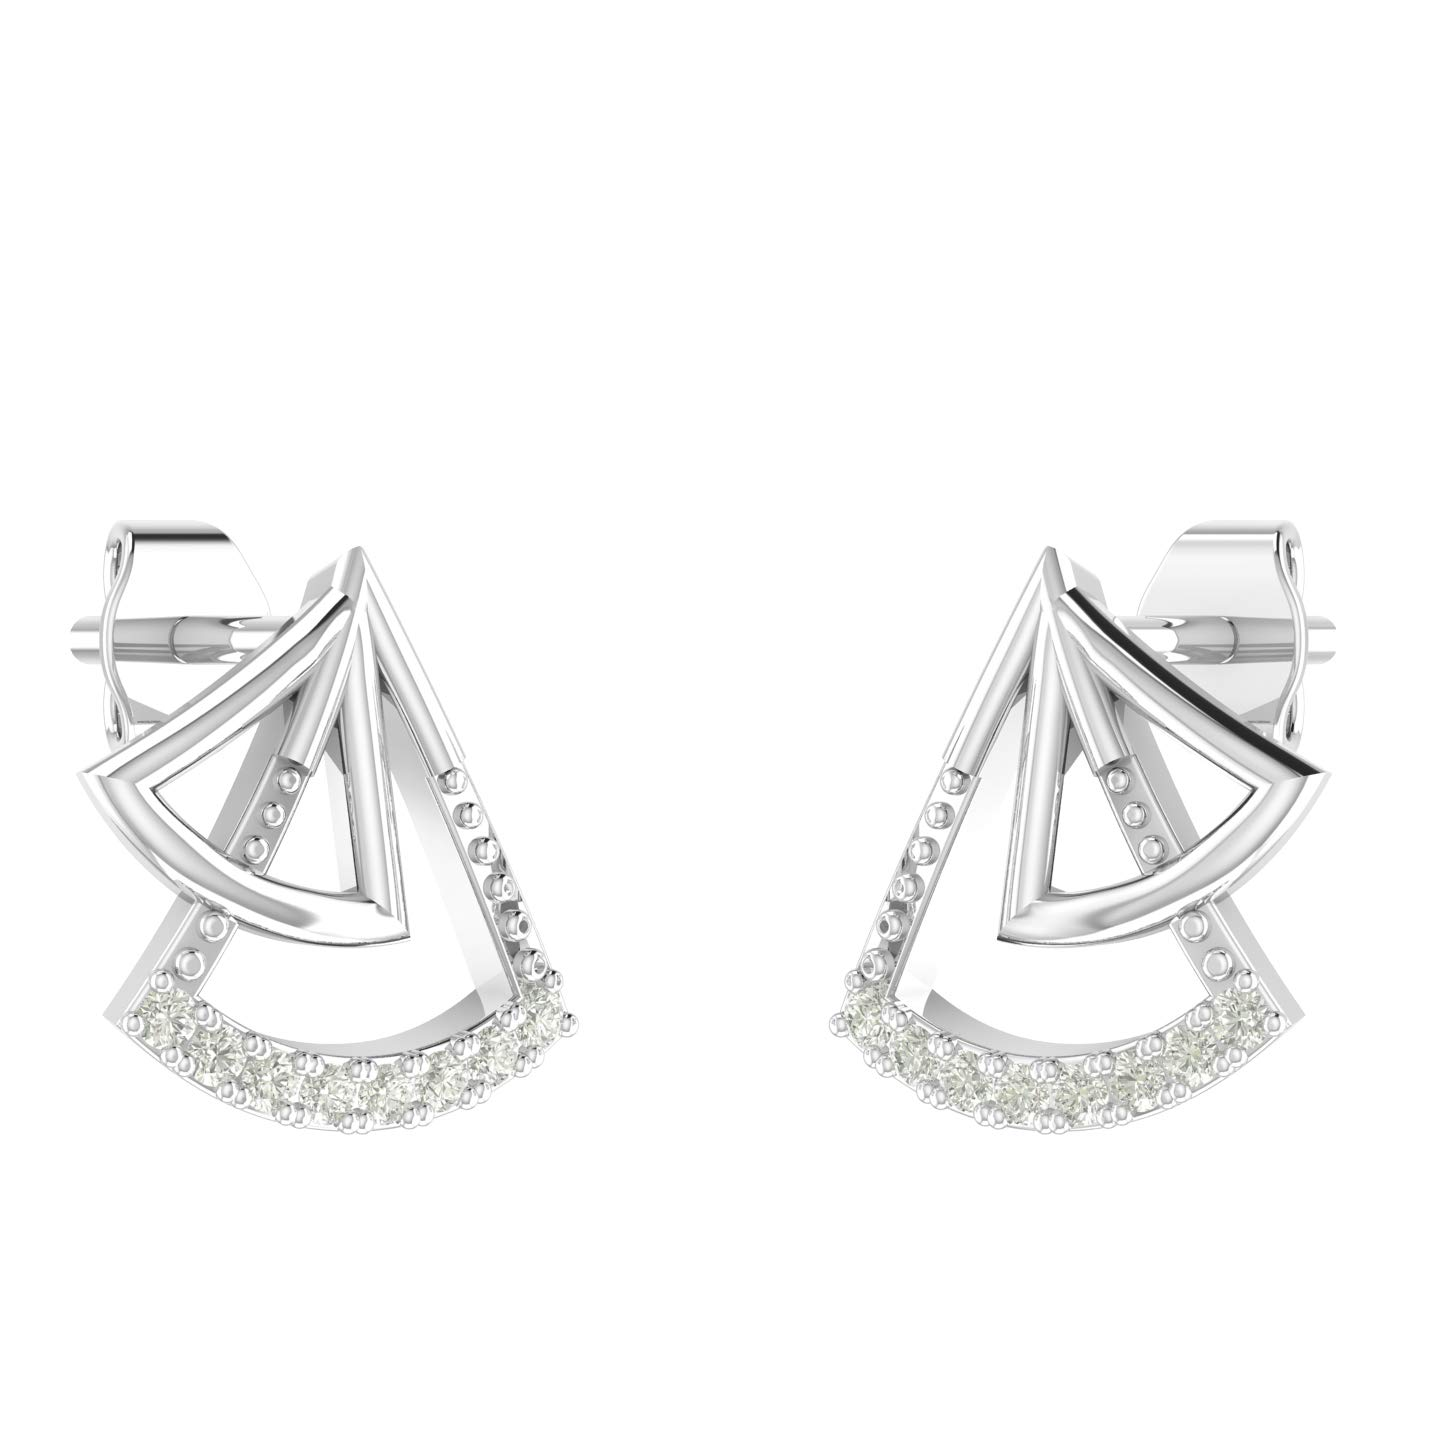 Amayra 0.04 CTW Diamond Stud Earring- 16 Natural Stones with Butterfly Pushbacks– Prong Setting in 925 Sterling Silver- (Color-GH Clarity-VS-SI) Unique Elegant Design Perfect Gift for All Occasions.